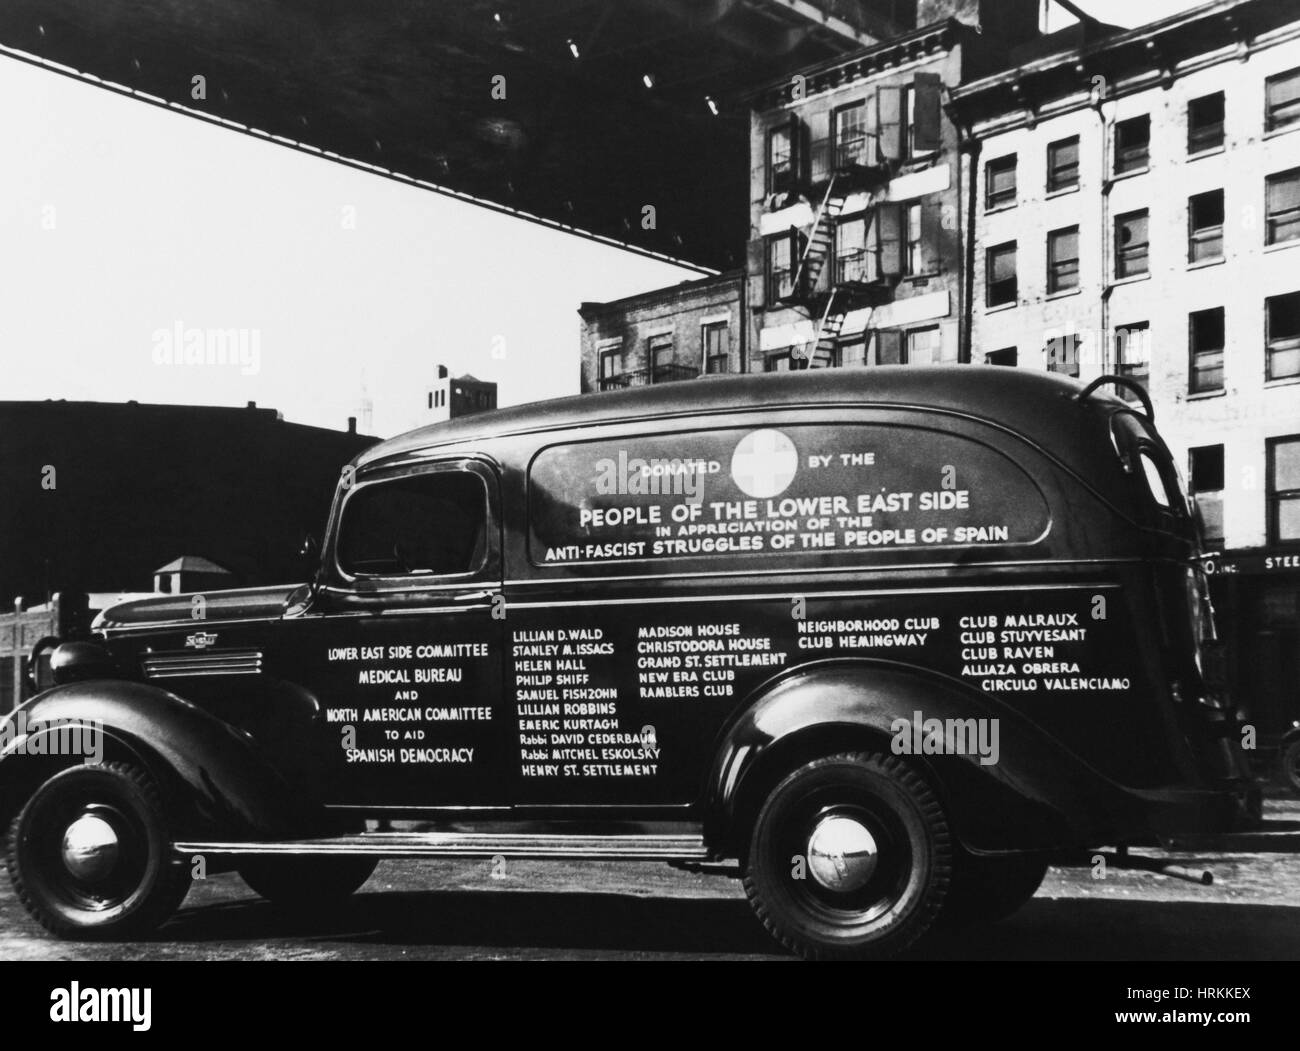 NYC Ambulance, 1930s - Stock Image